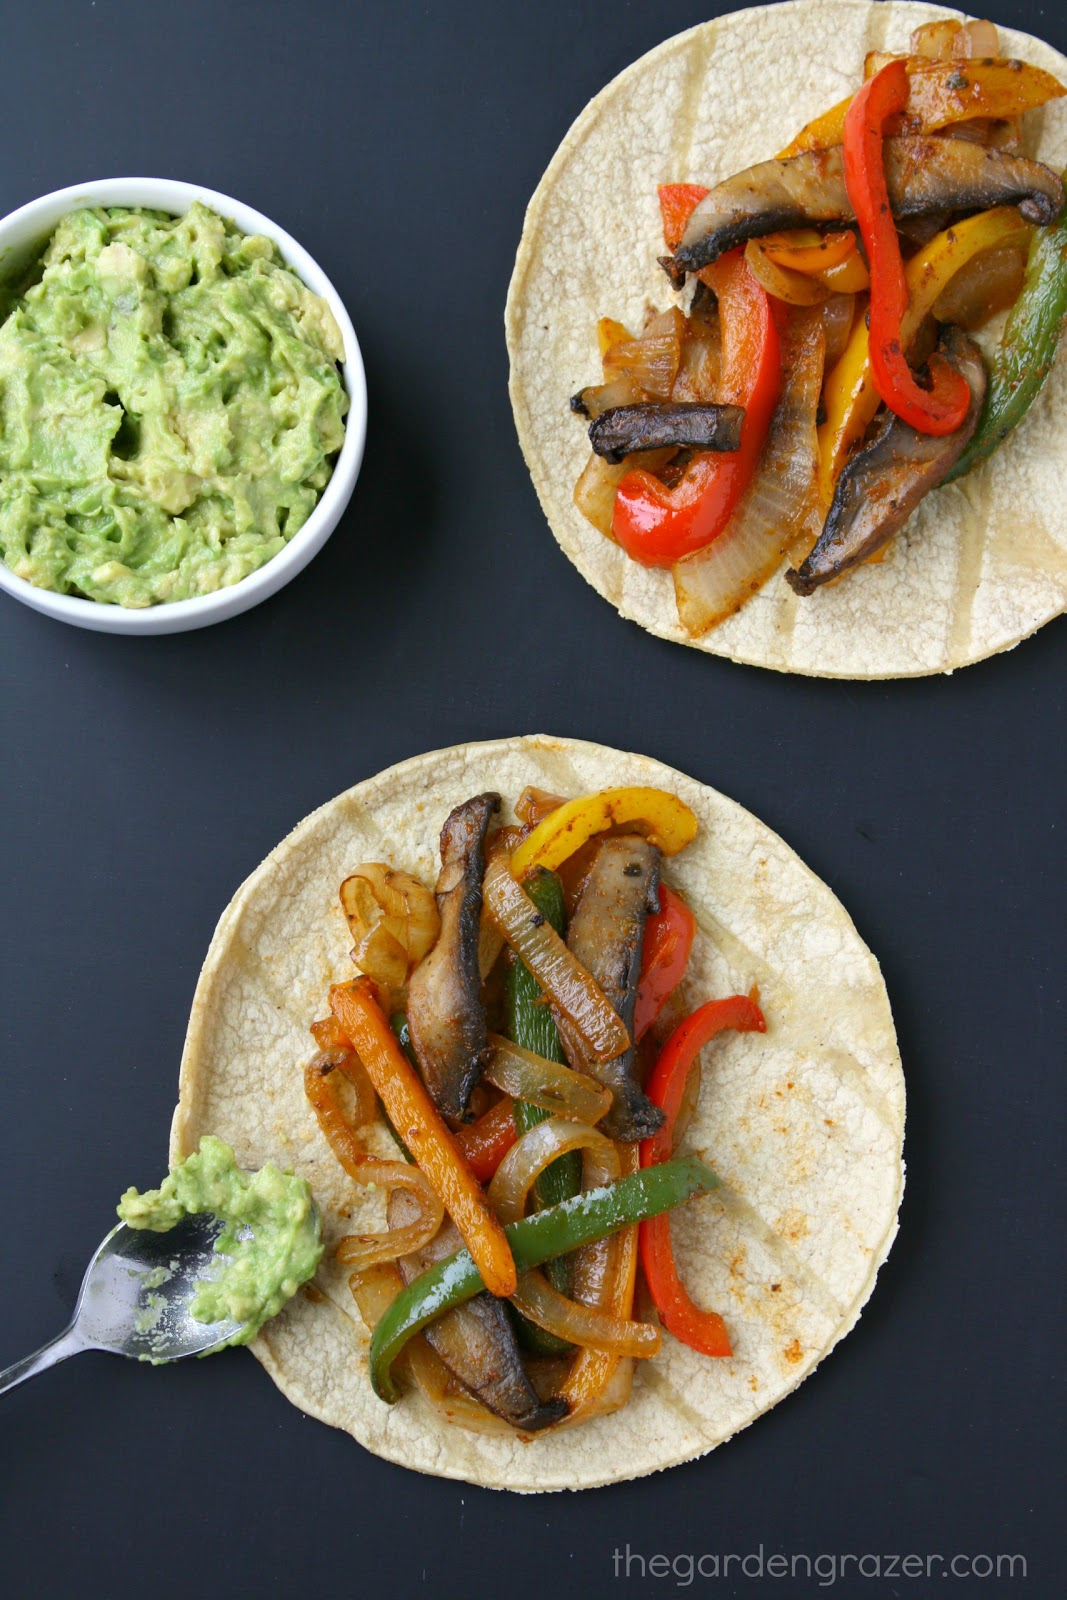 PORTOBELLO FAJITAS #cauliflower #mushroom #vegetarian #breakfast #easy